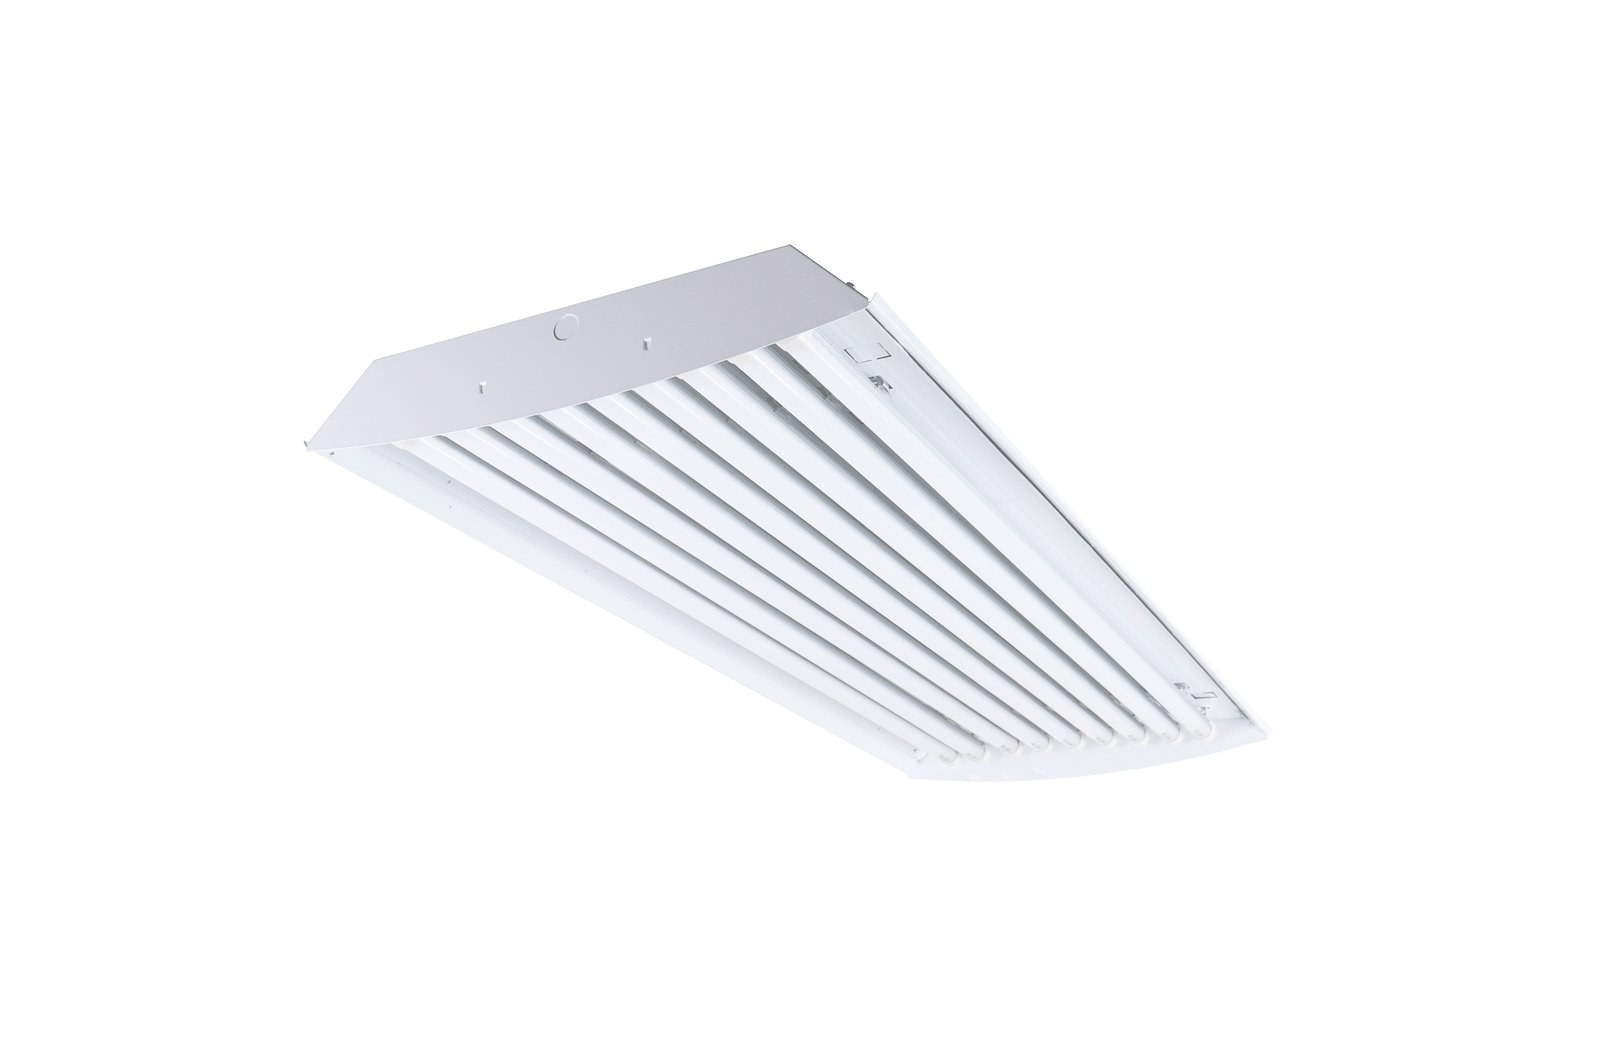 Alcon Lighting 2 Infinum Low Bay Architectural Commercial Led 2 Lamp Linear Low Bay Direct